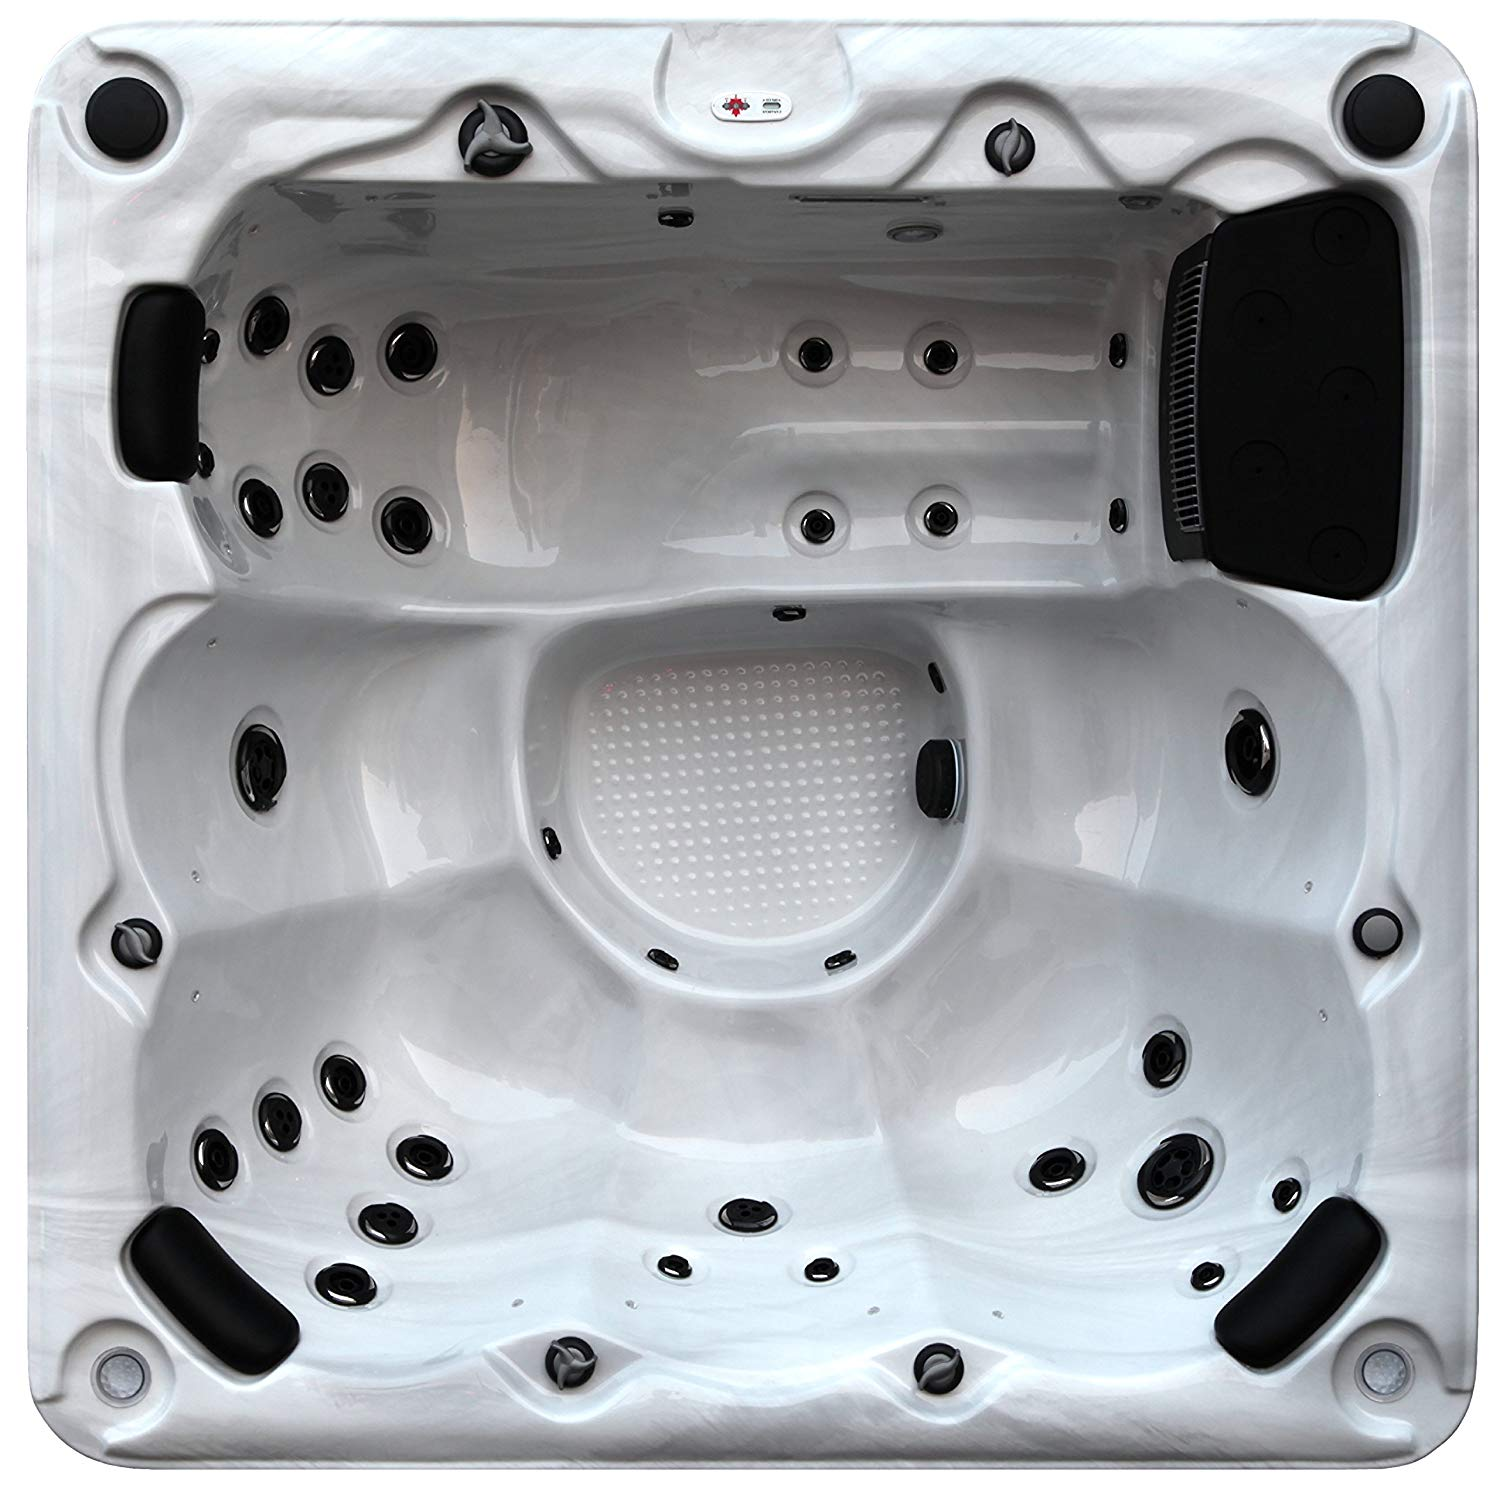 032a7f632b1 Get Quotations · Canadian Spa Company Winnipeg Plug   Play 35-Jet 6 Person  Hot Tub with LED